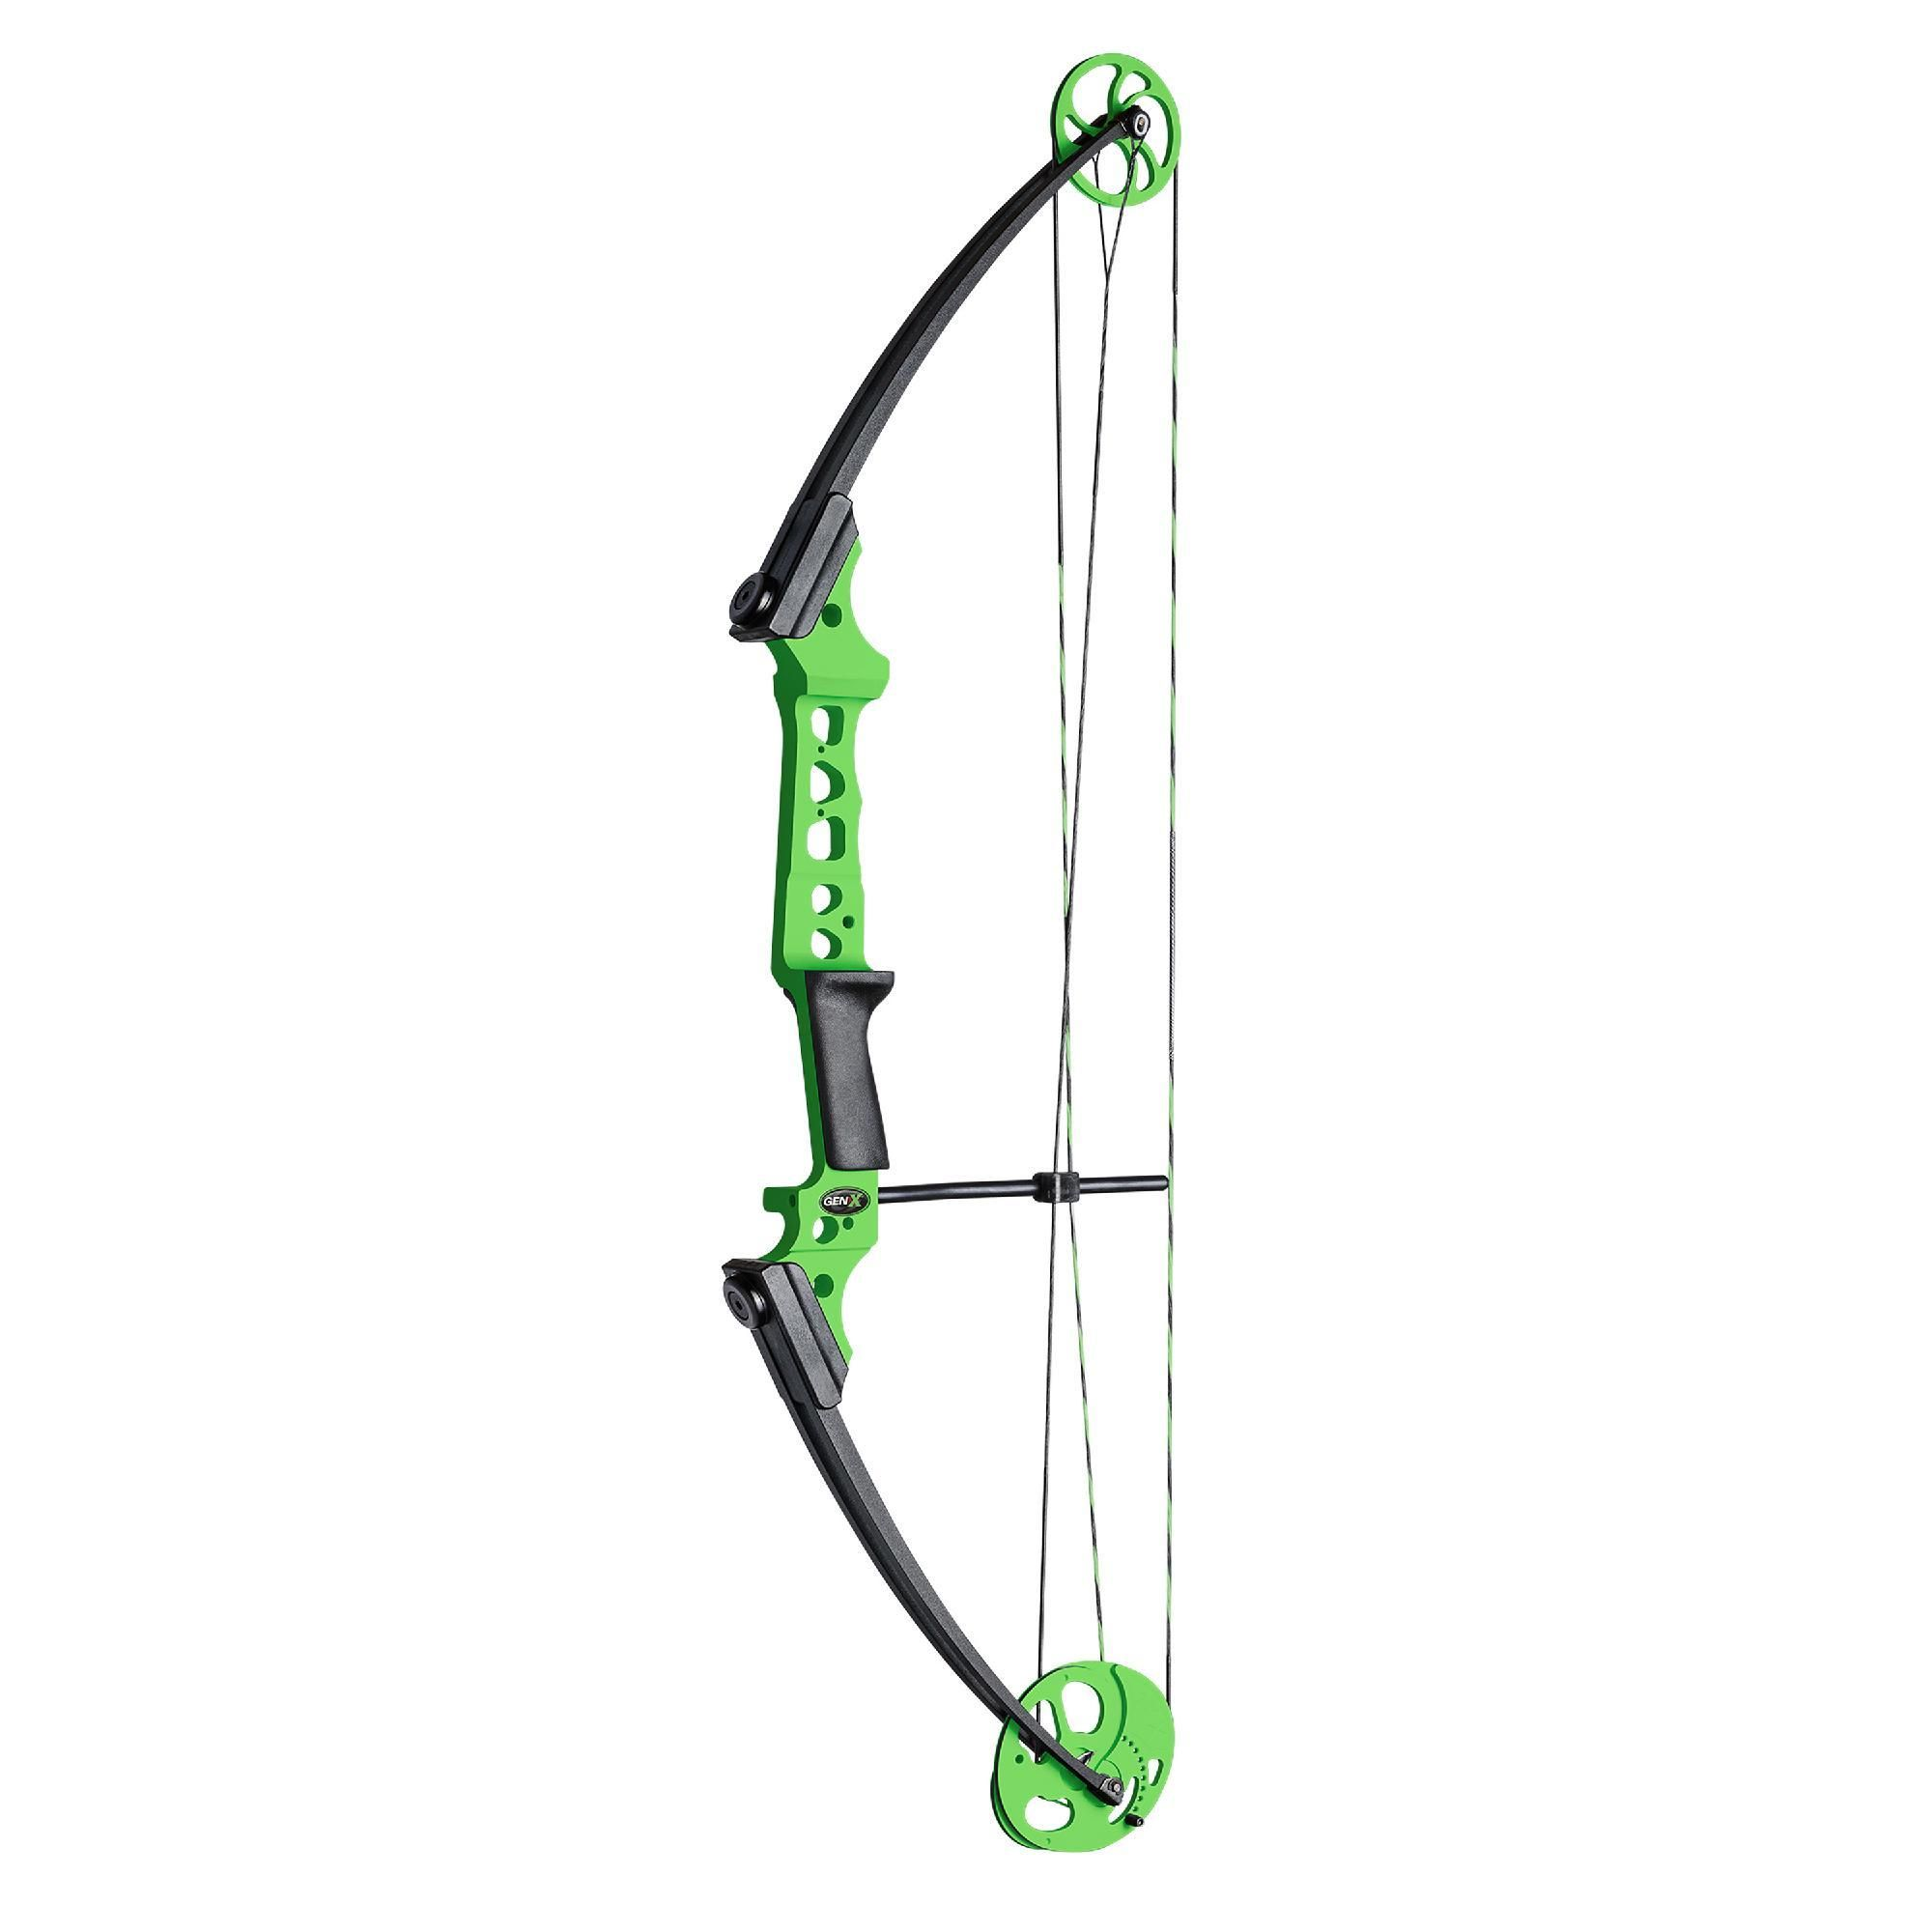 Gen X Bow with Kit Right Handed, Green Bows, Archery